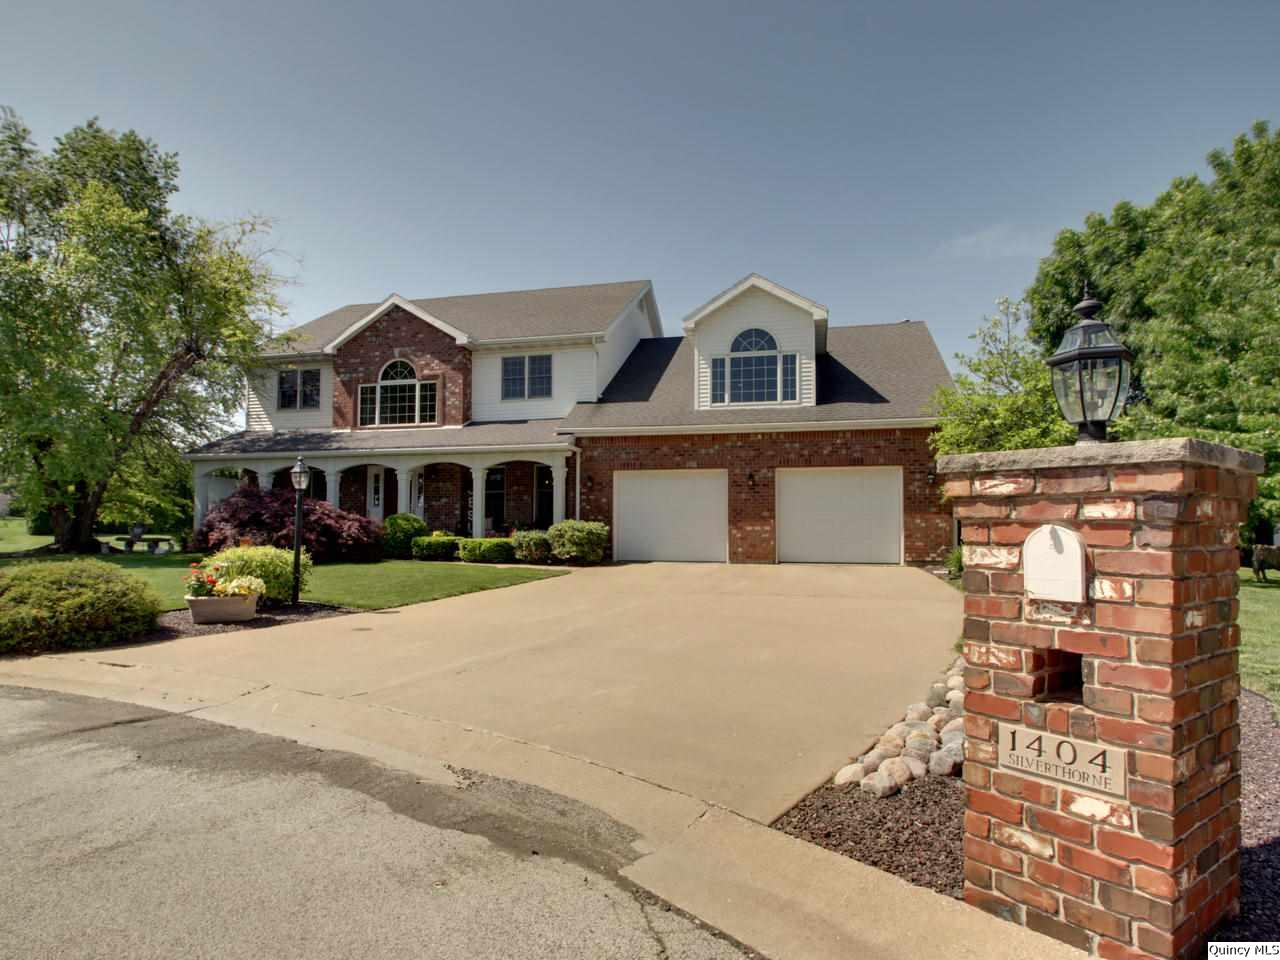 1404 Silverthorne Drive, Quincy